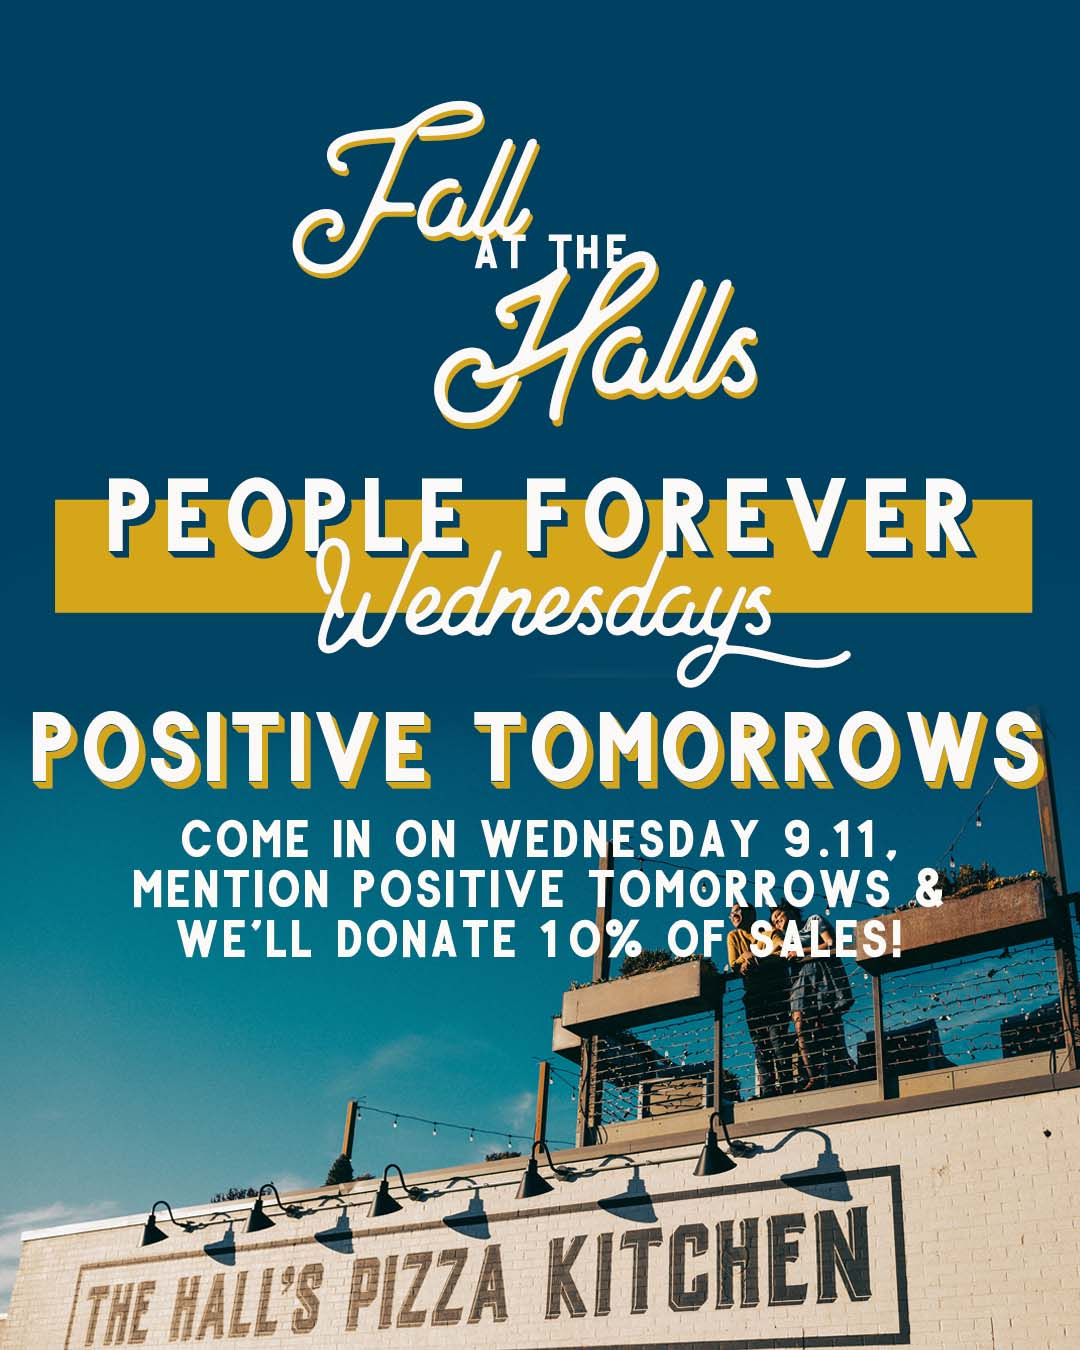 PEOPLE FOREVER - post - Positive Tomorrows.jpg